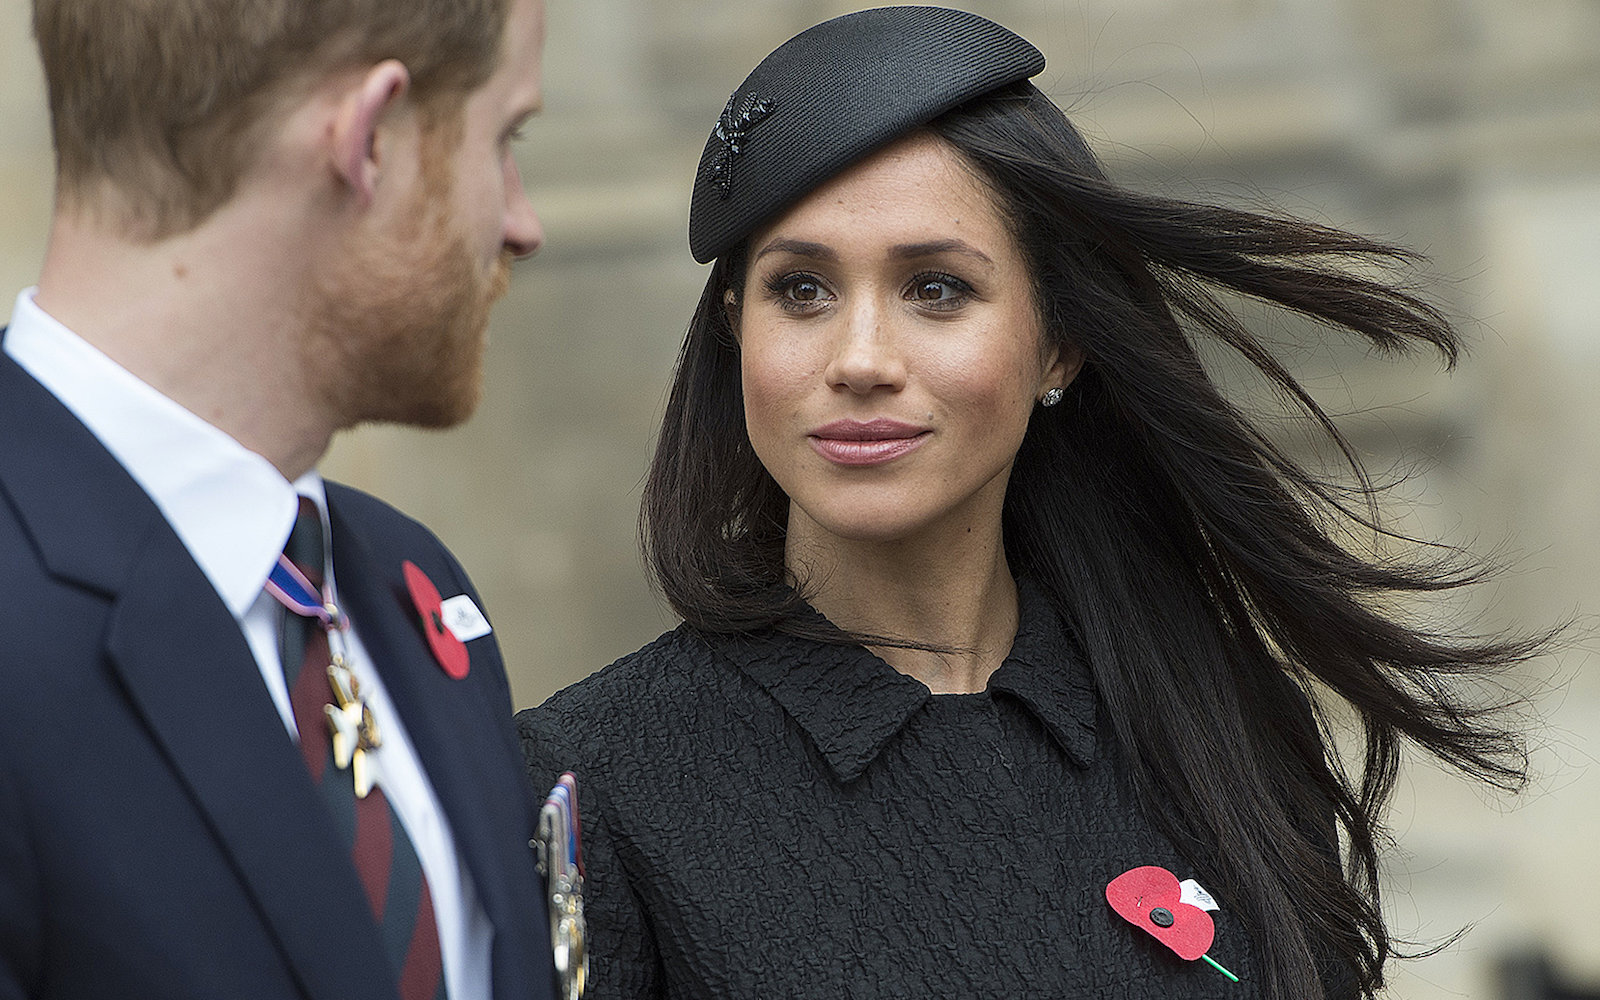 Britain's Prince Harry (L), his US fiancee Meghan Markle (C), and Britain's Prince William, Duke of Cambridge, attend a service of commemoration and thanksgiving to mark Anzac Day in Westminster Abbey in London on April 25, 2018.